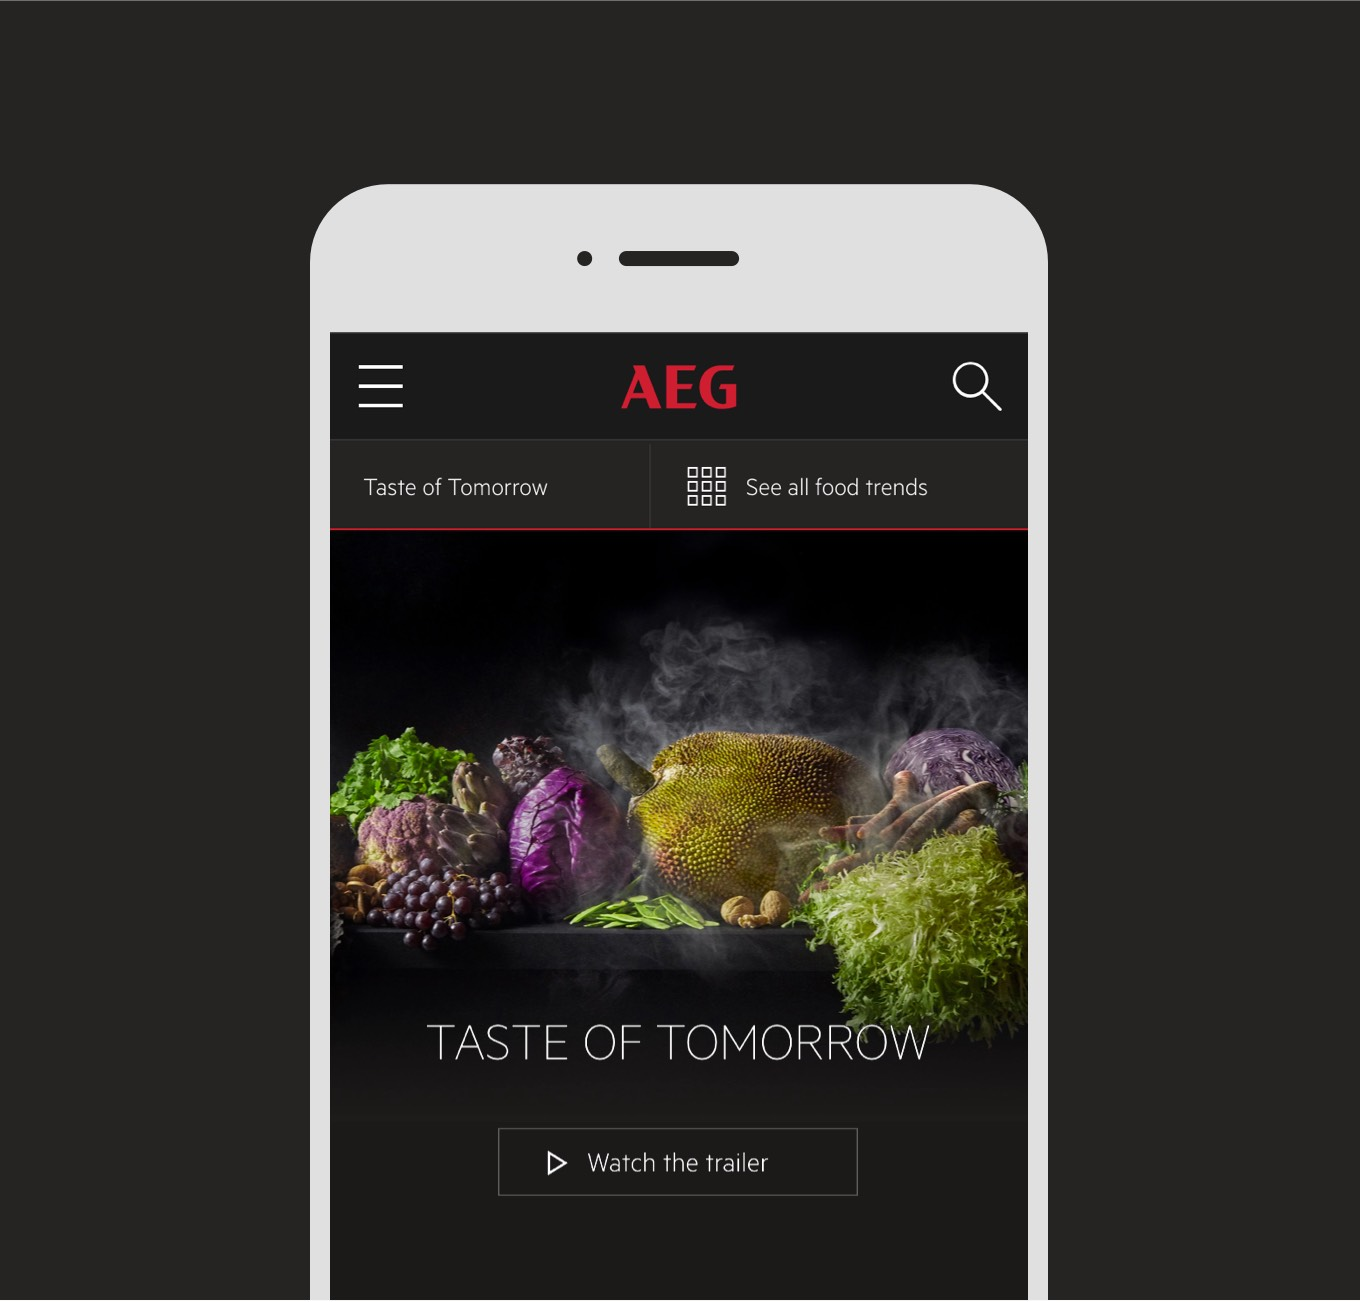 taste of tomorrow, a page on the AEG mobile site